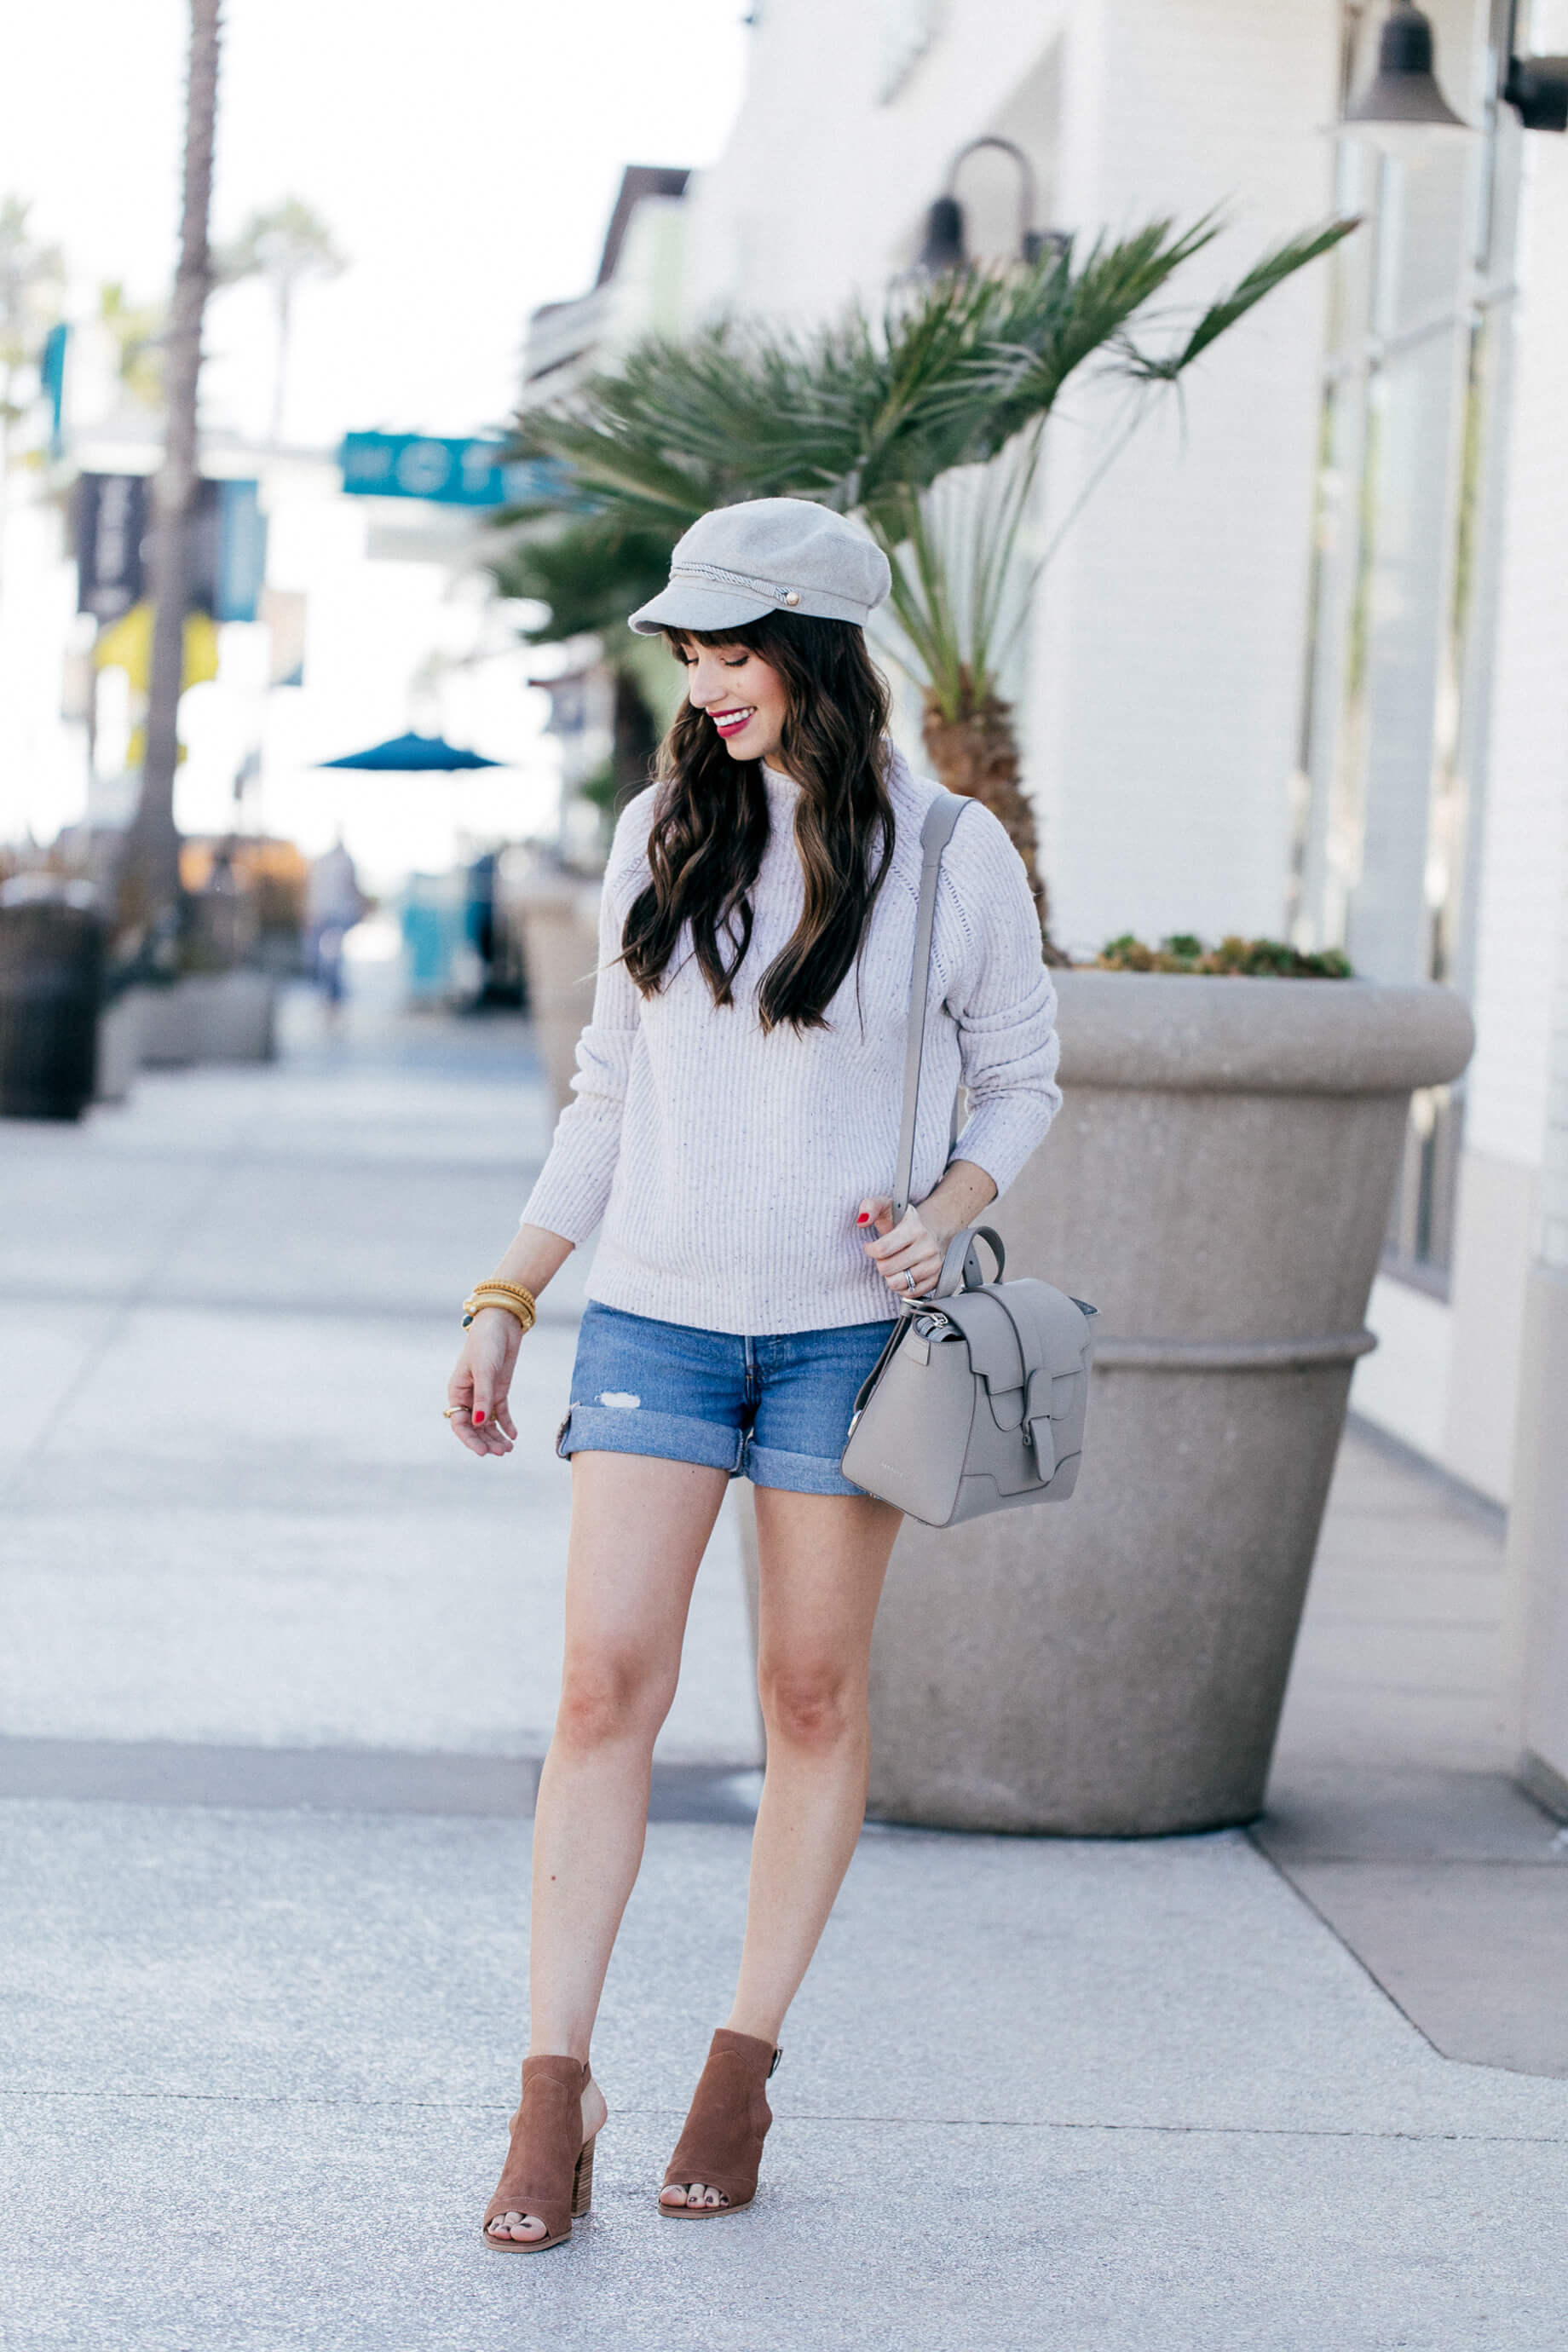 I love this outfit inspired by SoCal in fall! So chic! | M Loves M @marmar